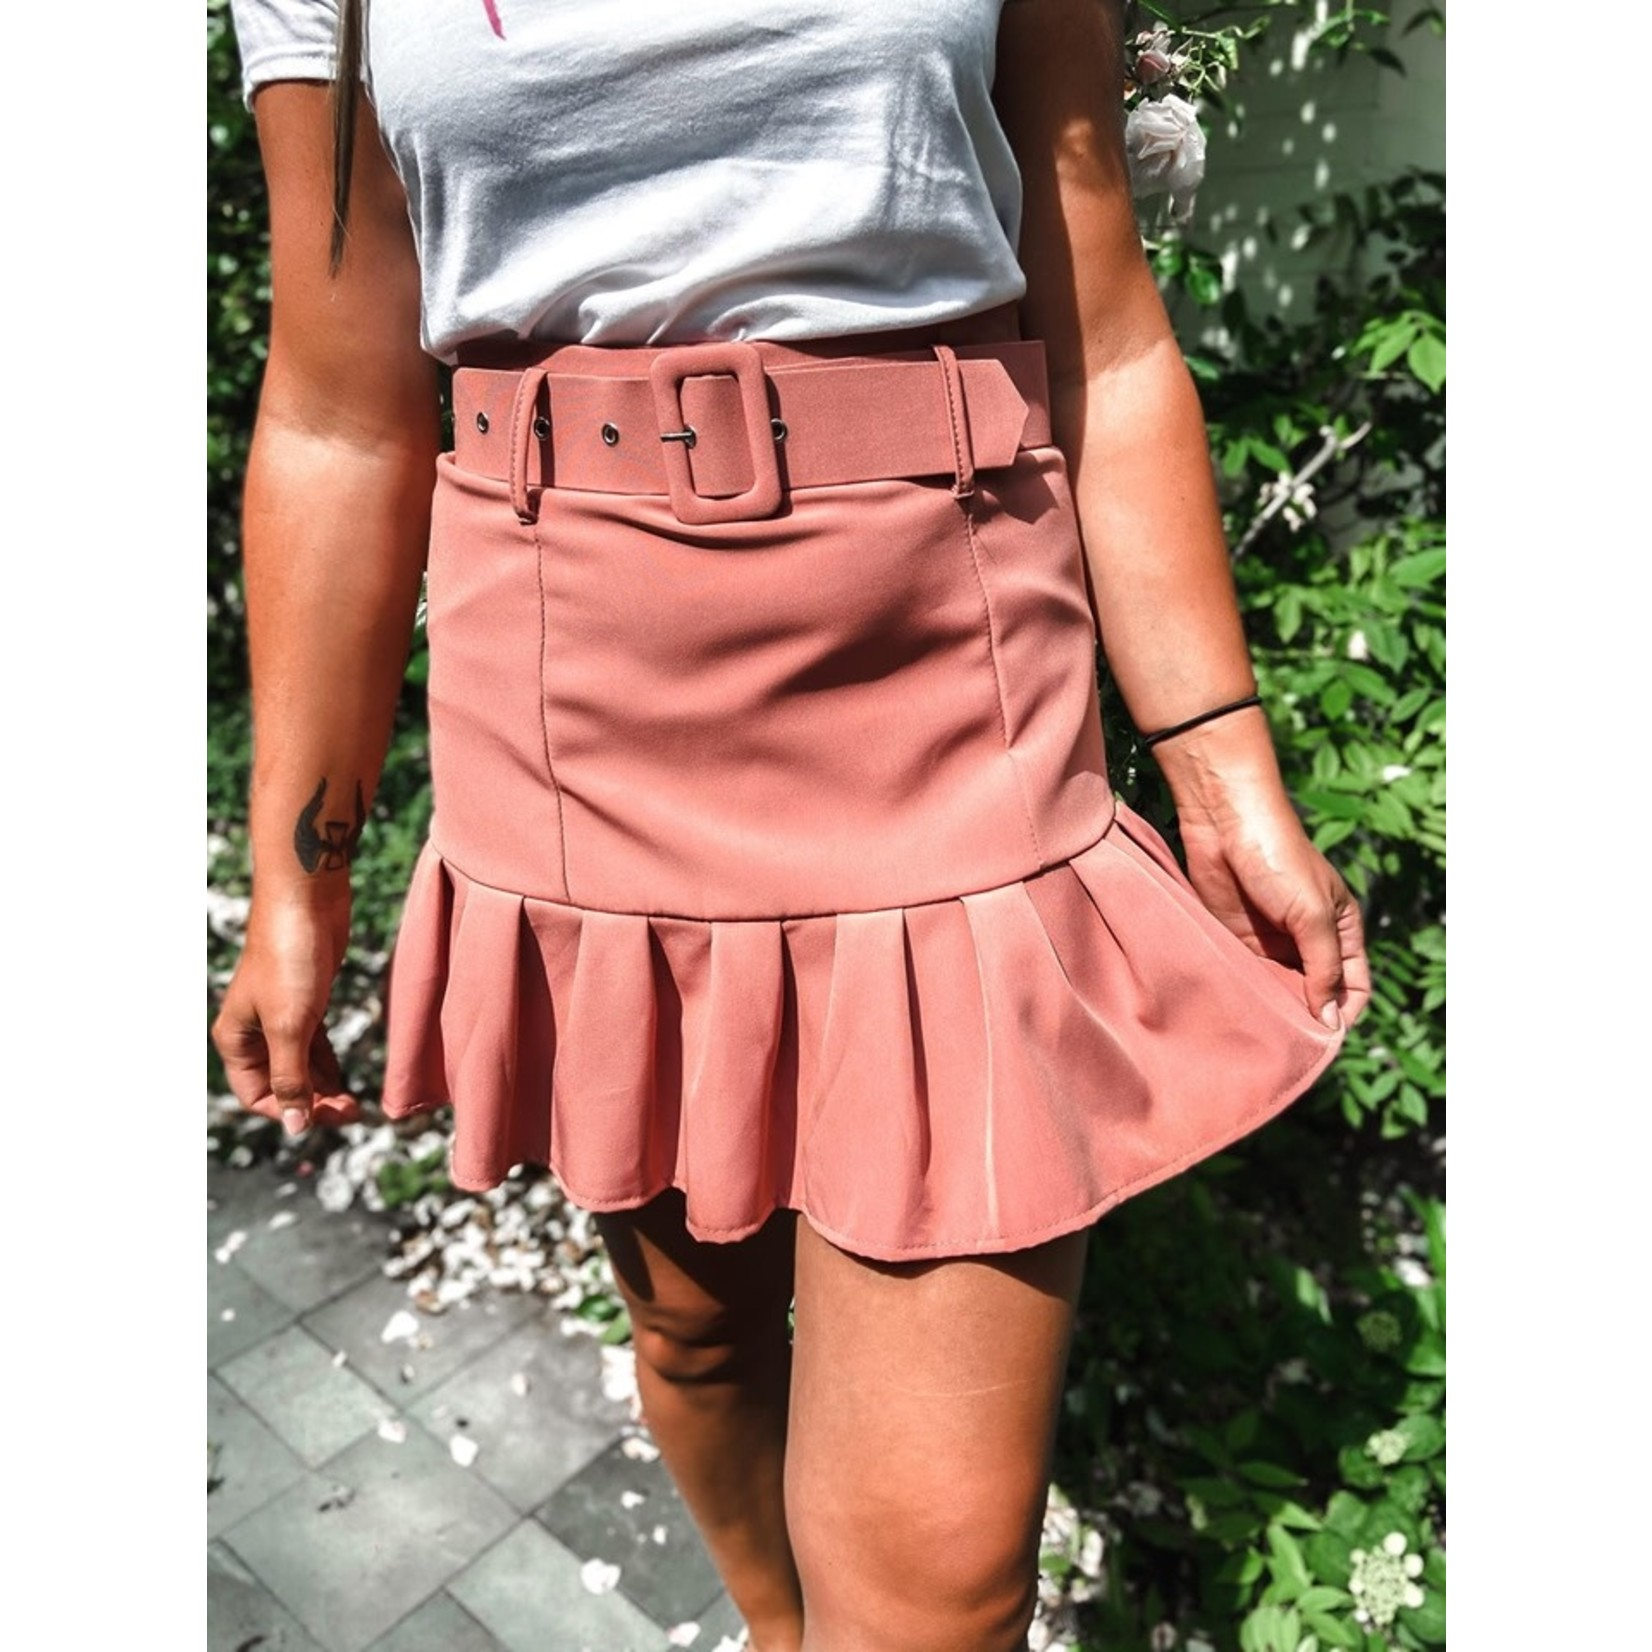 Skirt with ruffles oud roos